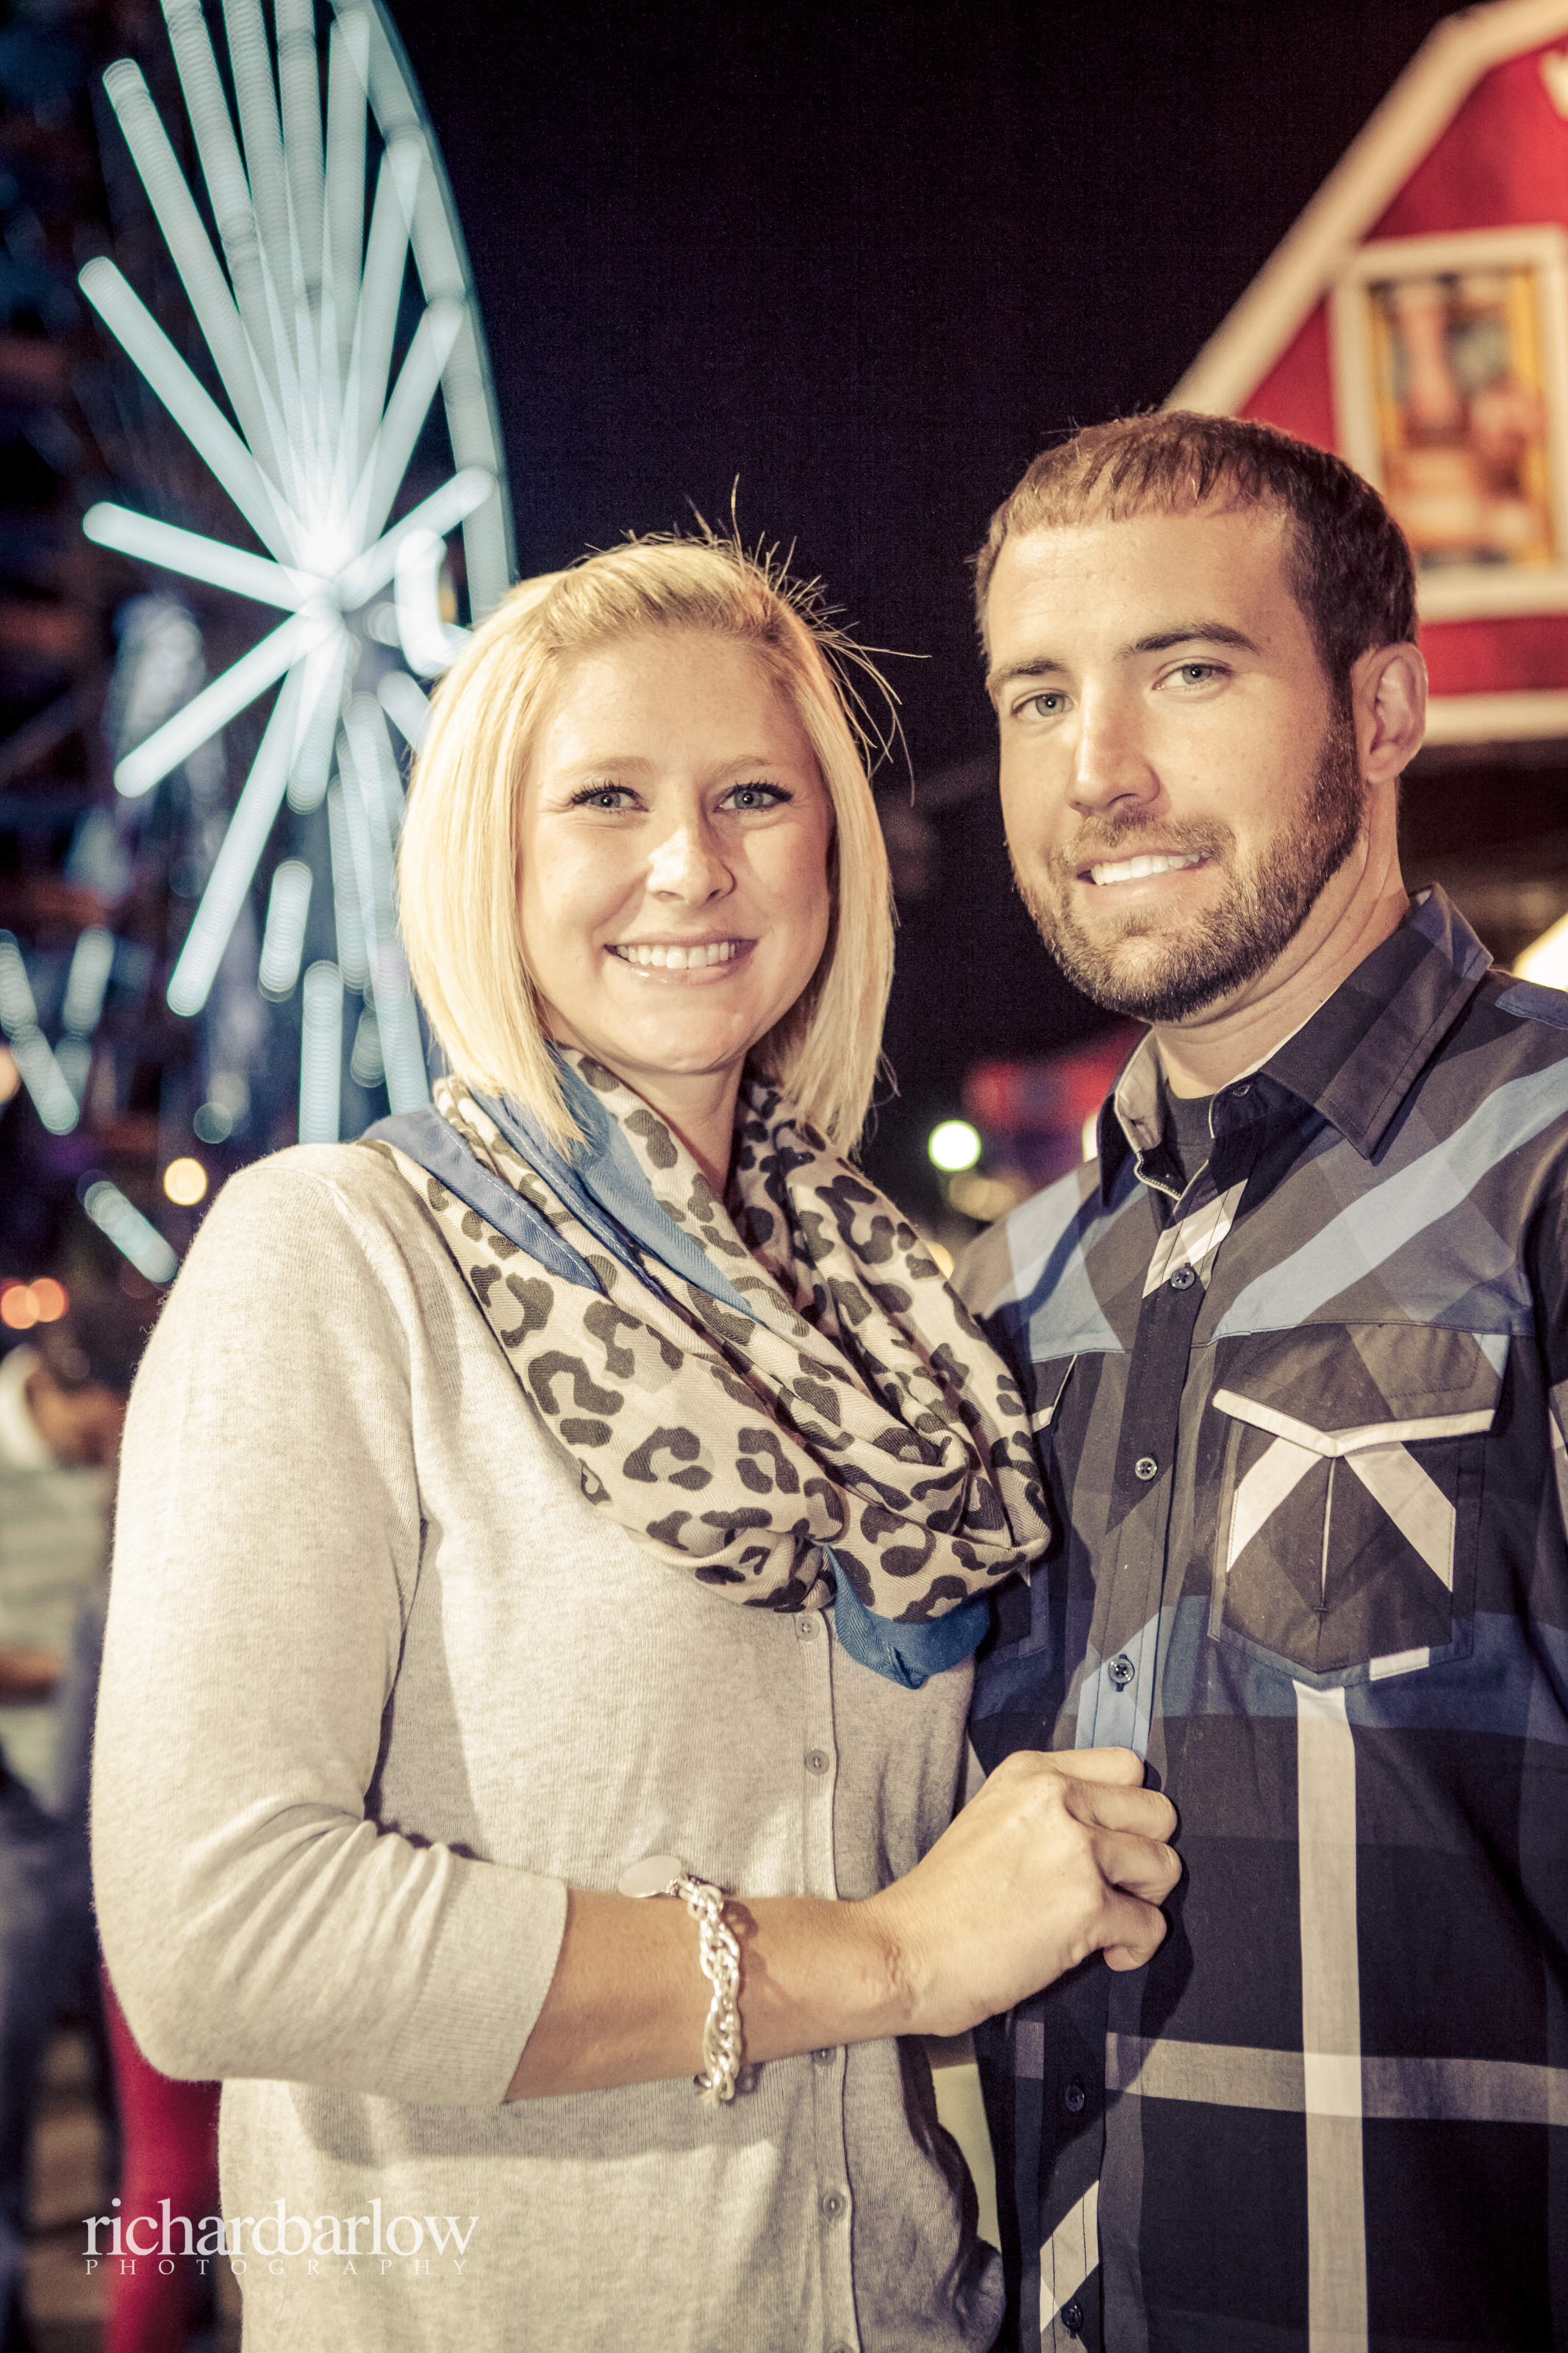 richard barlow photography - Mike and Renee Engagement Session NC-22.jpg